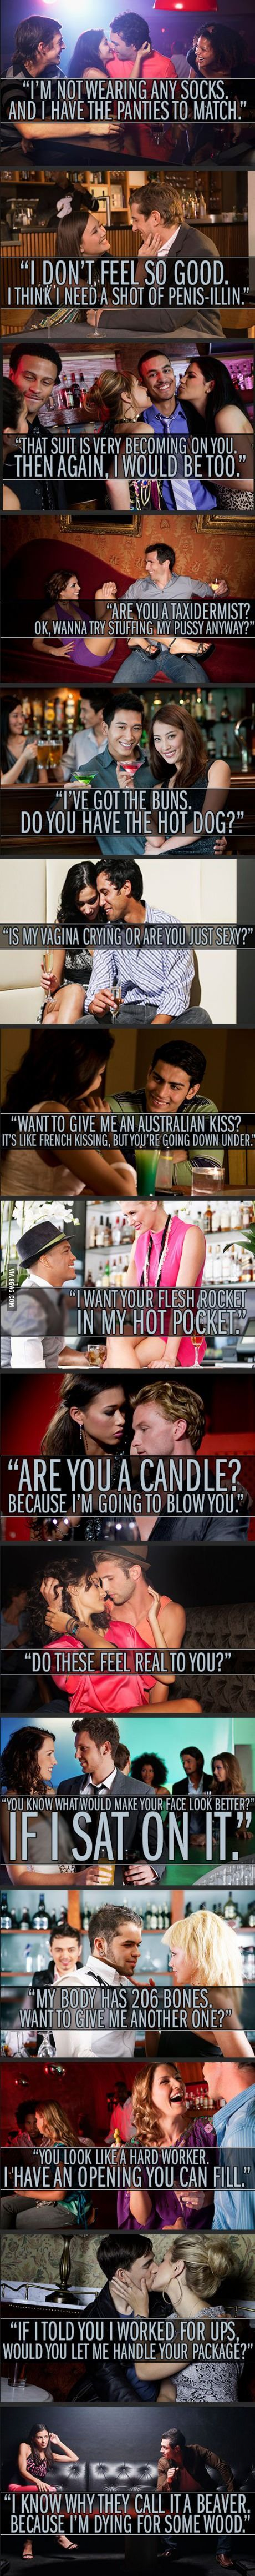 Ladies, use them wisely - Gentlemen, play it cool when you hear them. Women pick up lines.